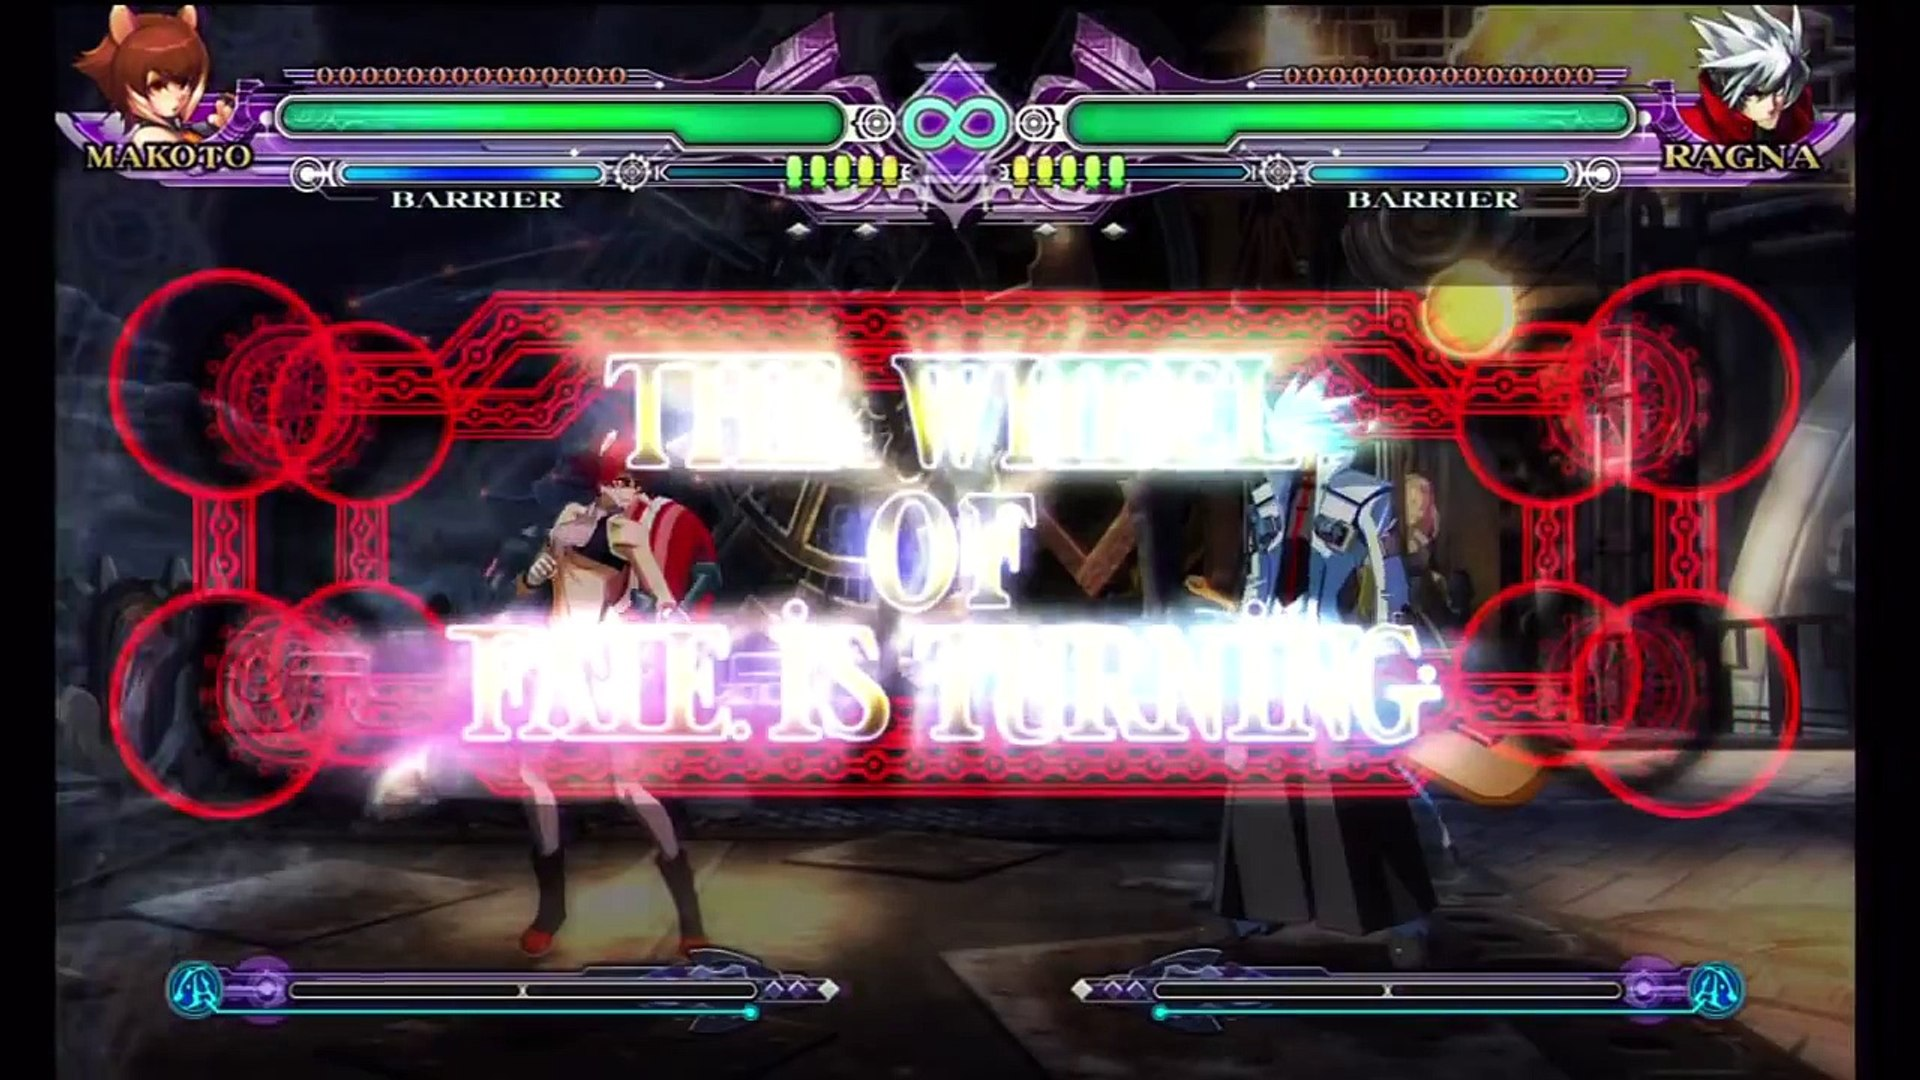 Blazblue Continuum Shift Extend - Yoko (Makoto) vs Gintoki (Ragna) (11 Dec  2012)